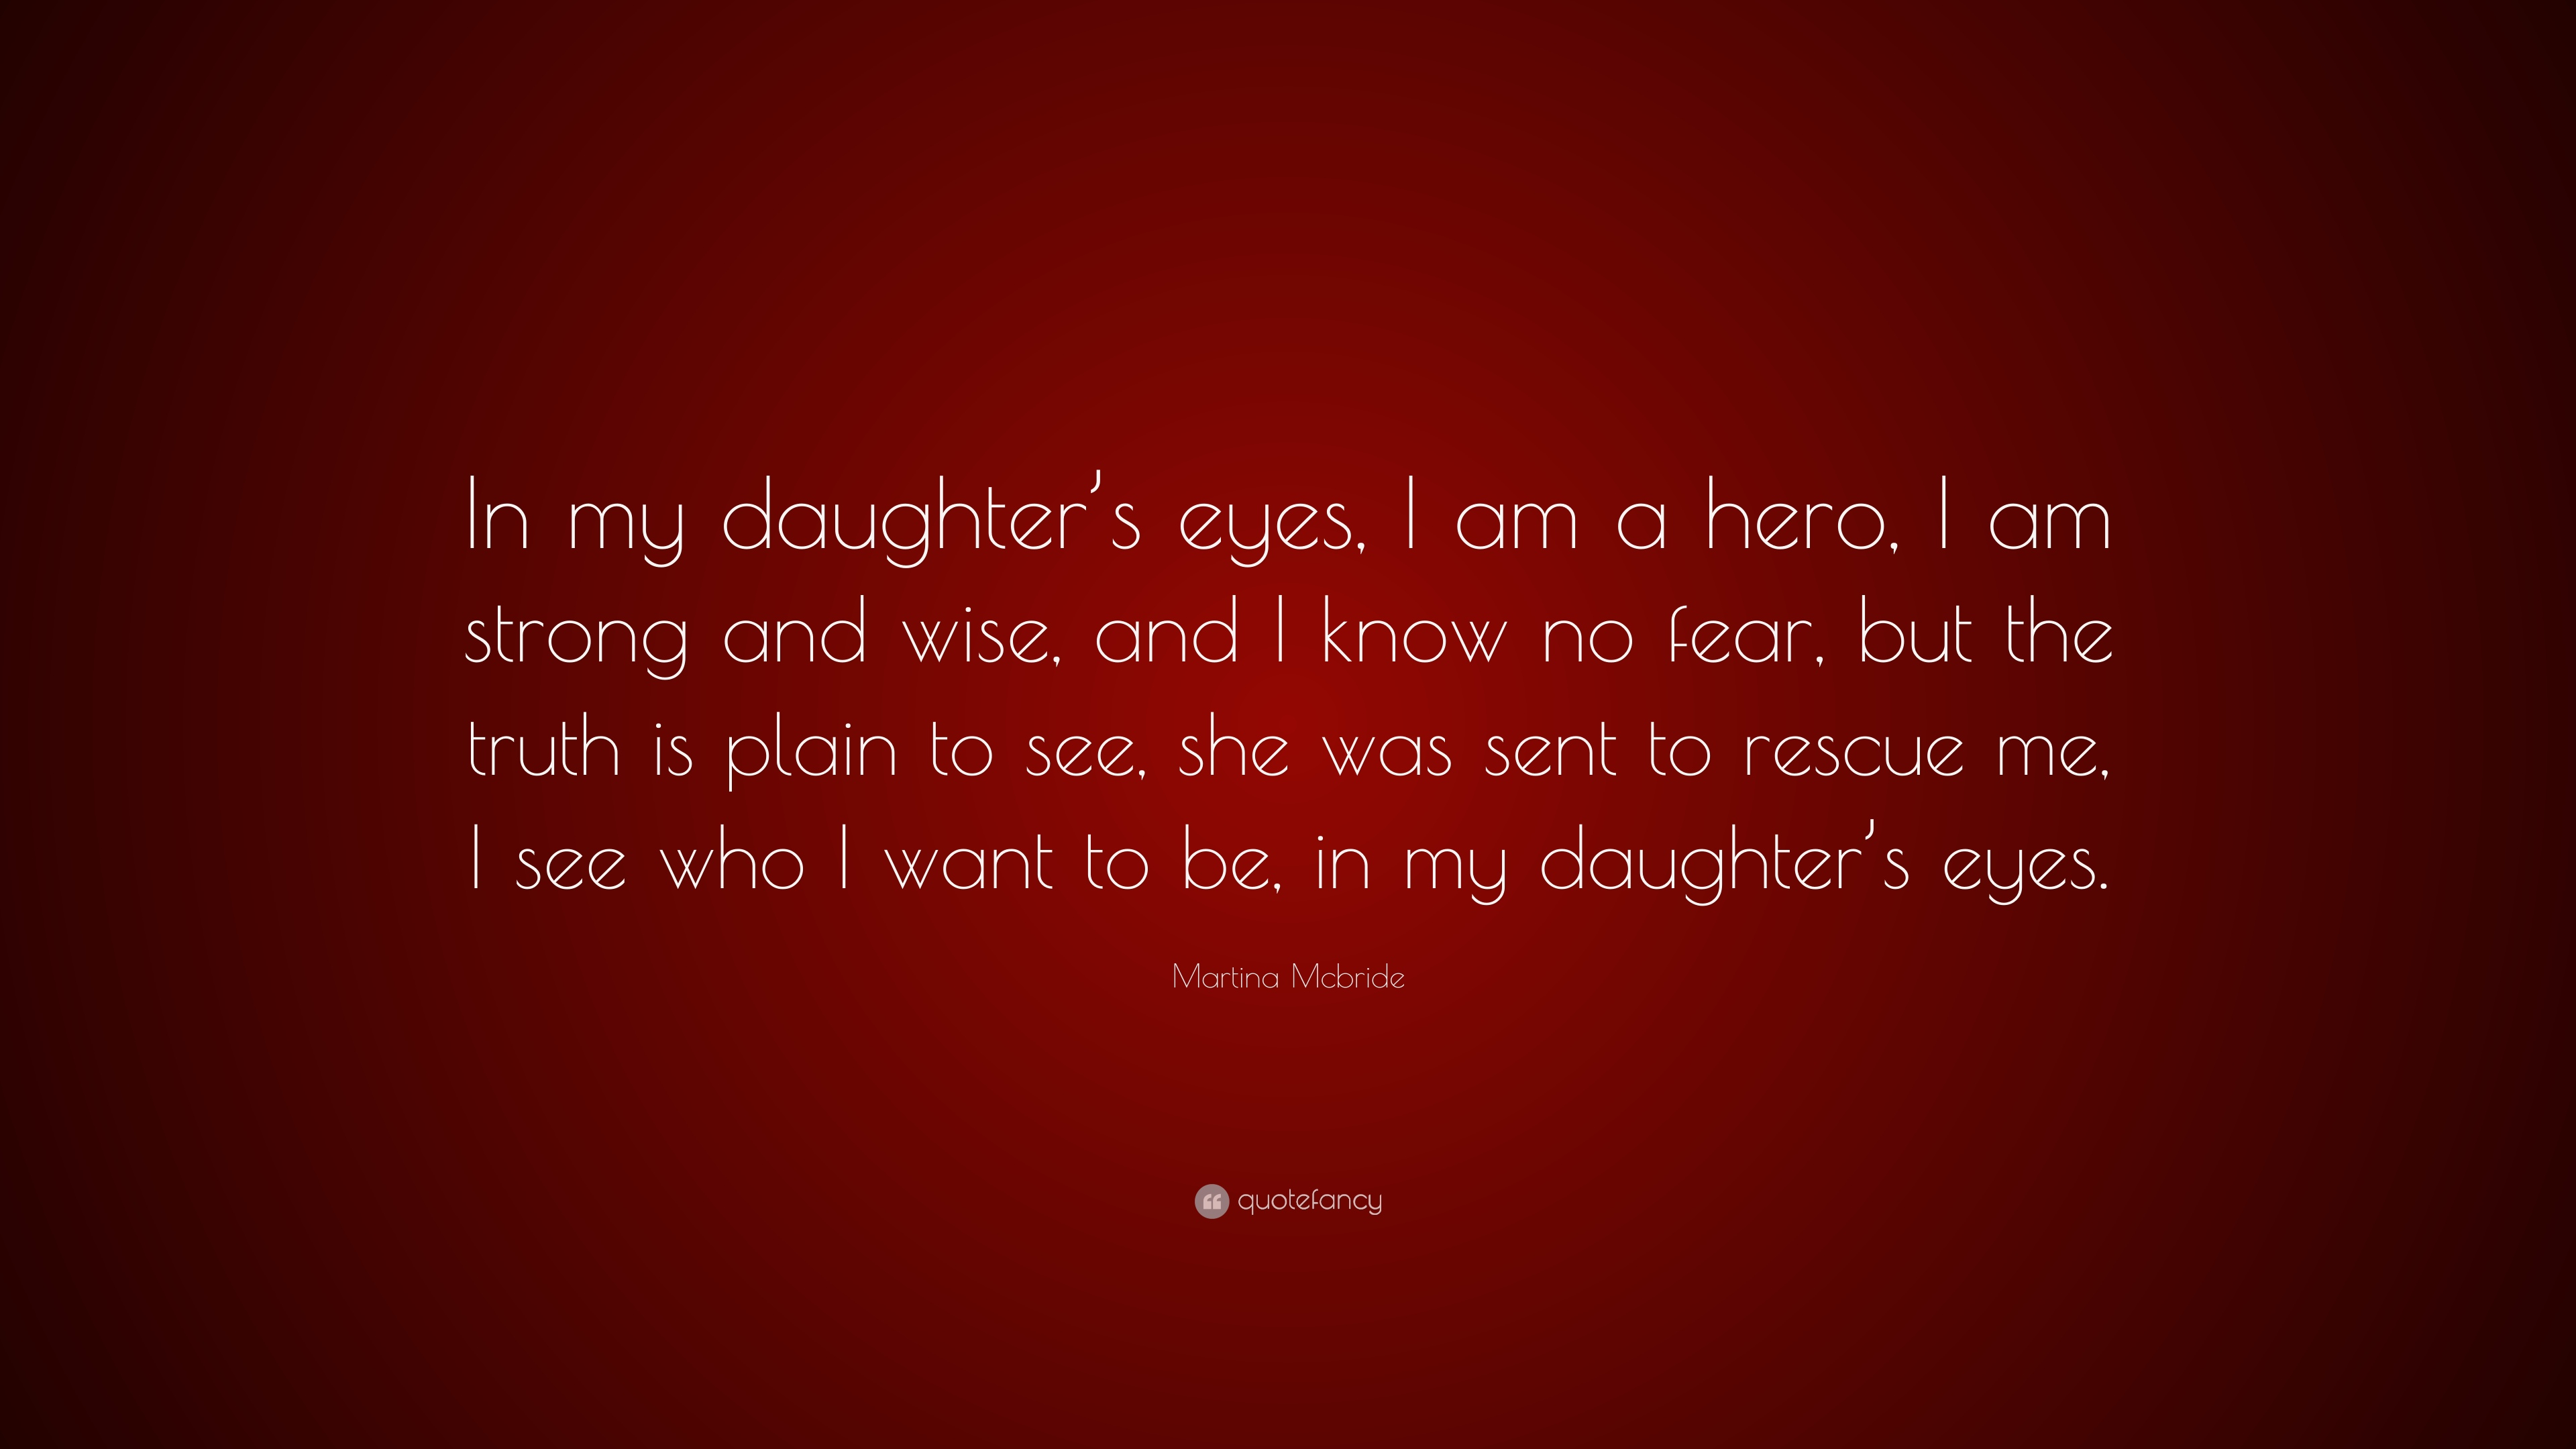 martina mcbride quote in my daughter s eyes i am a hero i am